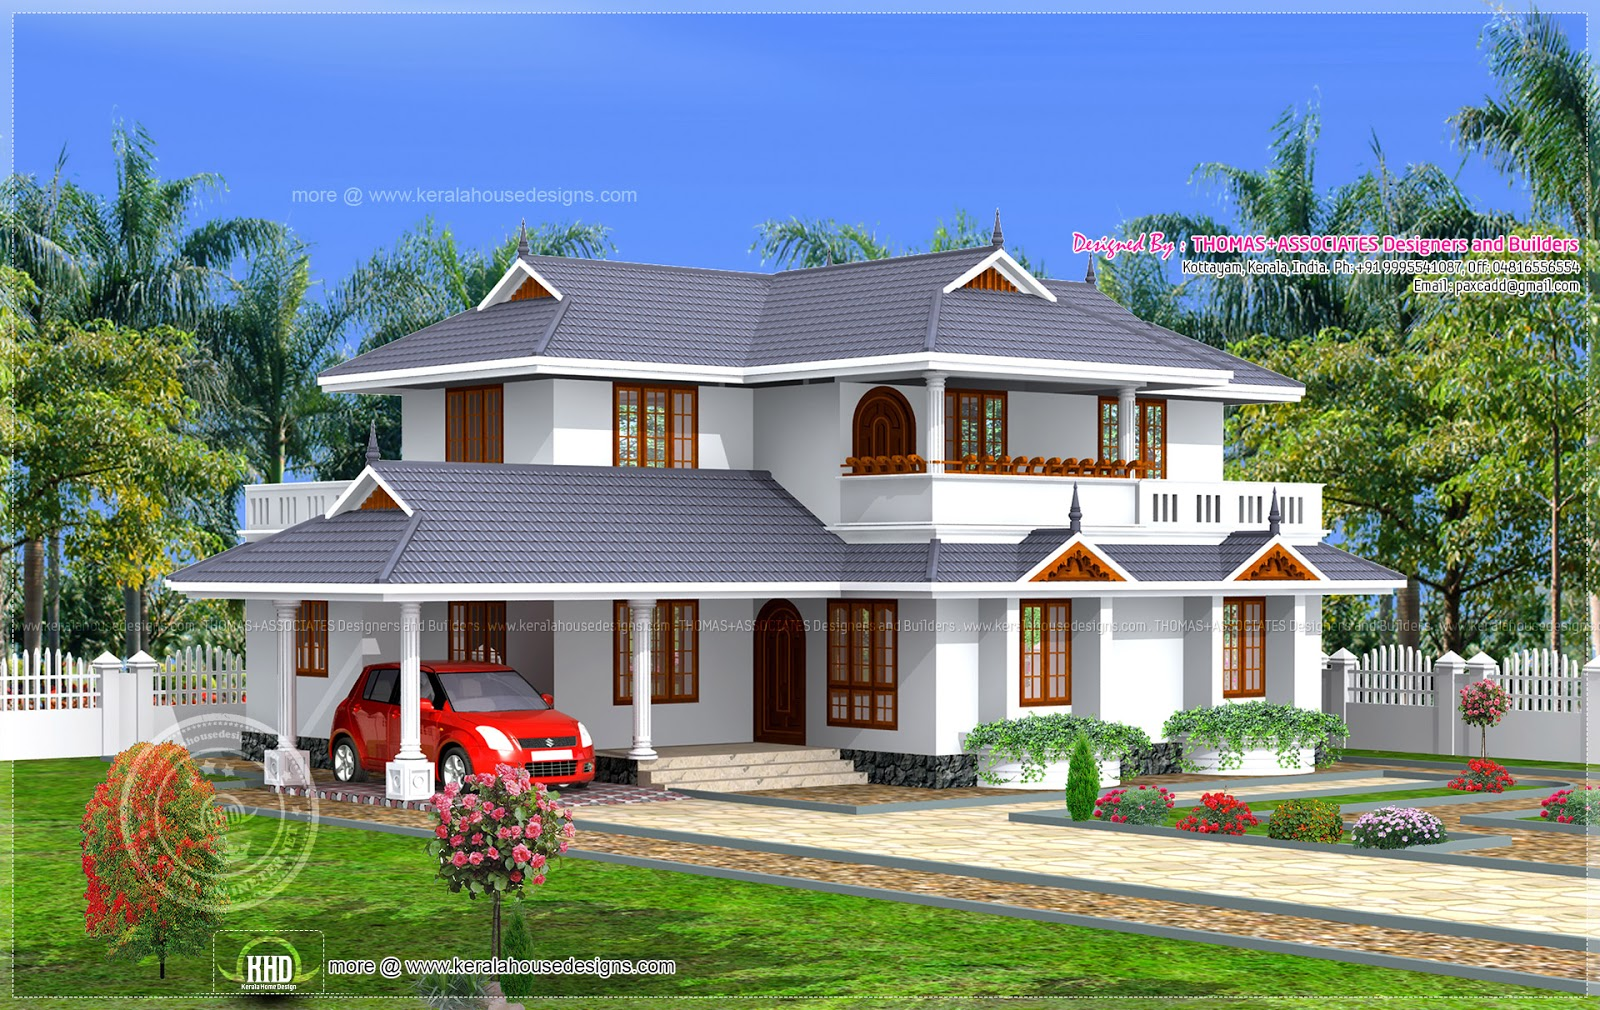 New model house kerala joy studio design gallery best design - Kerala exterior model homes ...